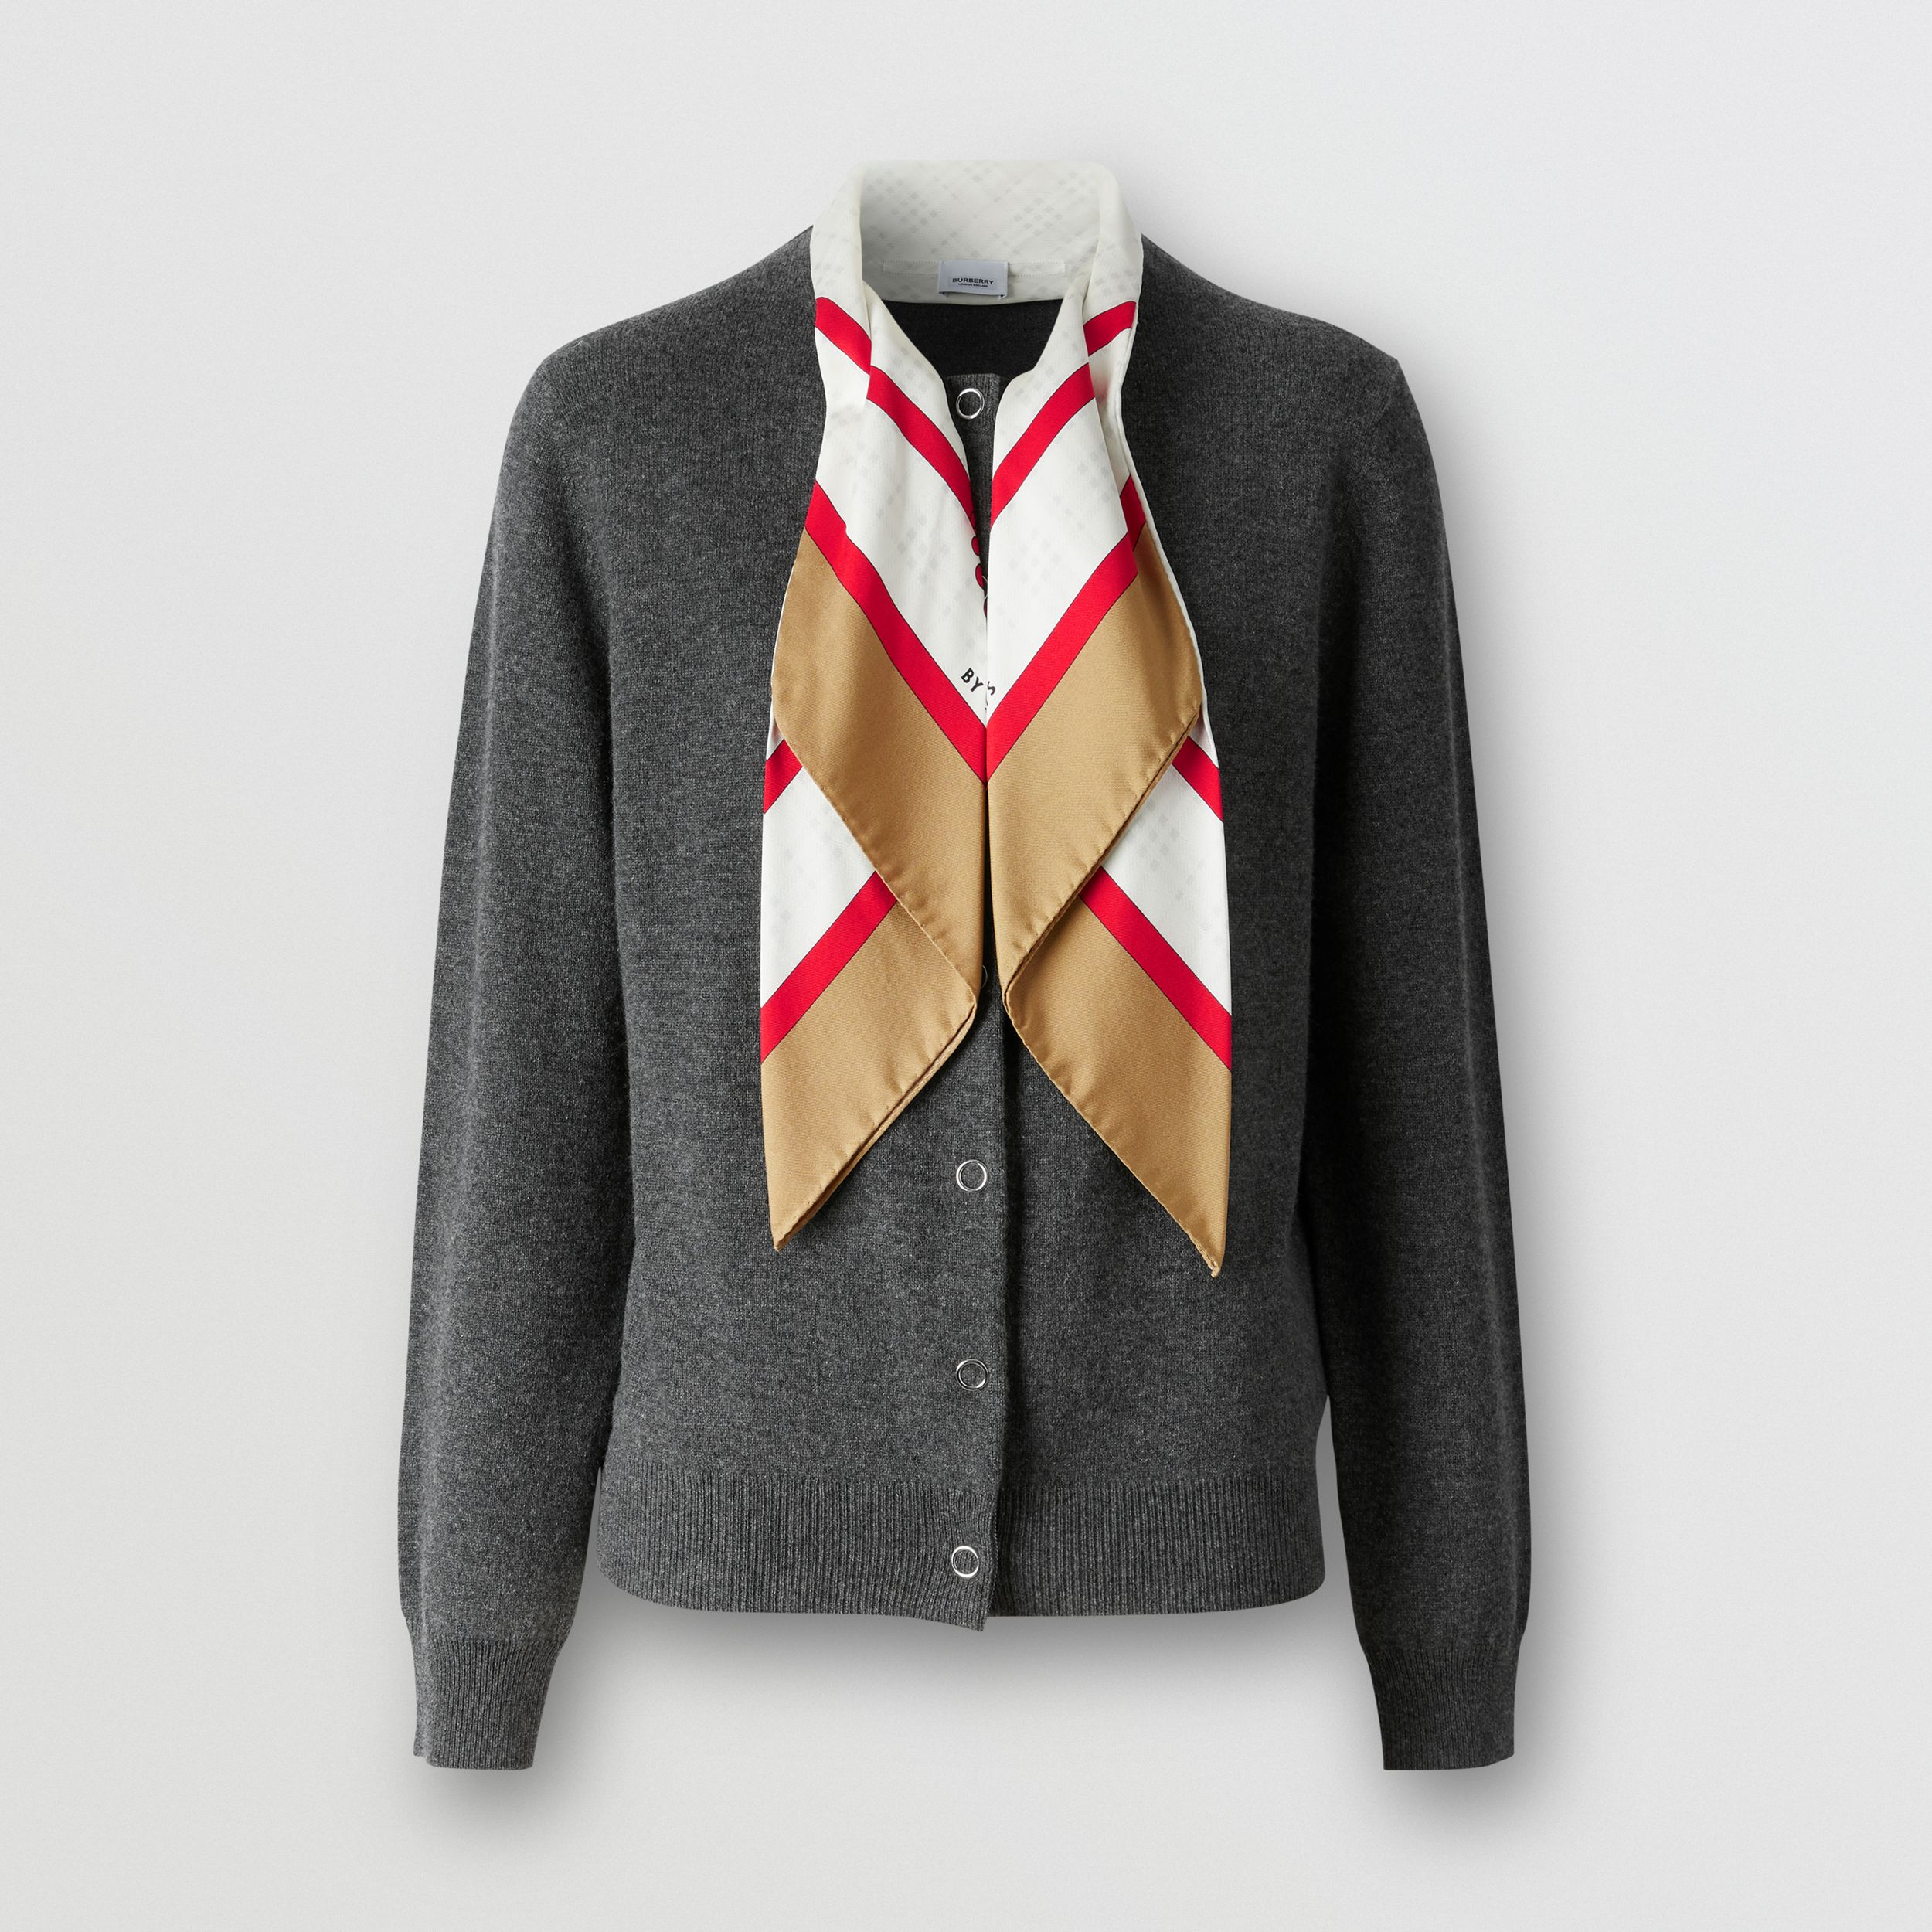 Silk Scarf Detail Cashmere Cardigan in Grey Melange - Women | Burberry - 4